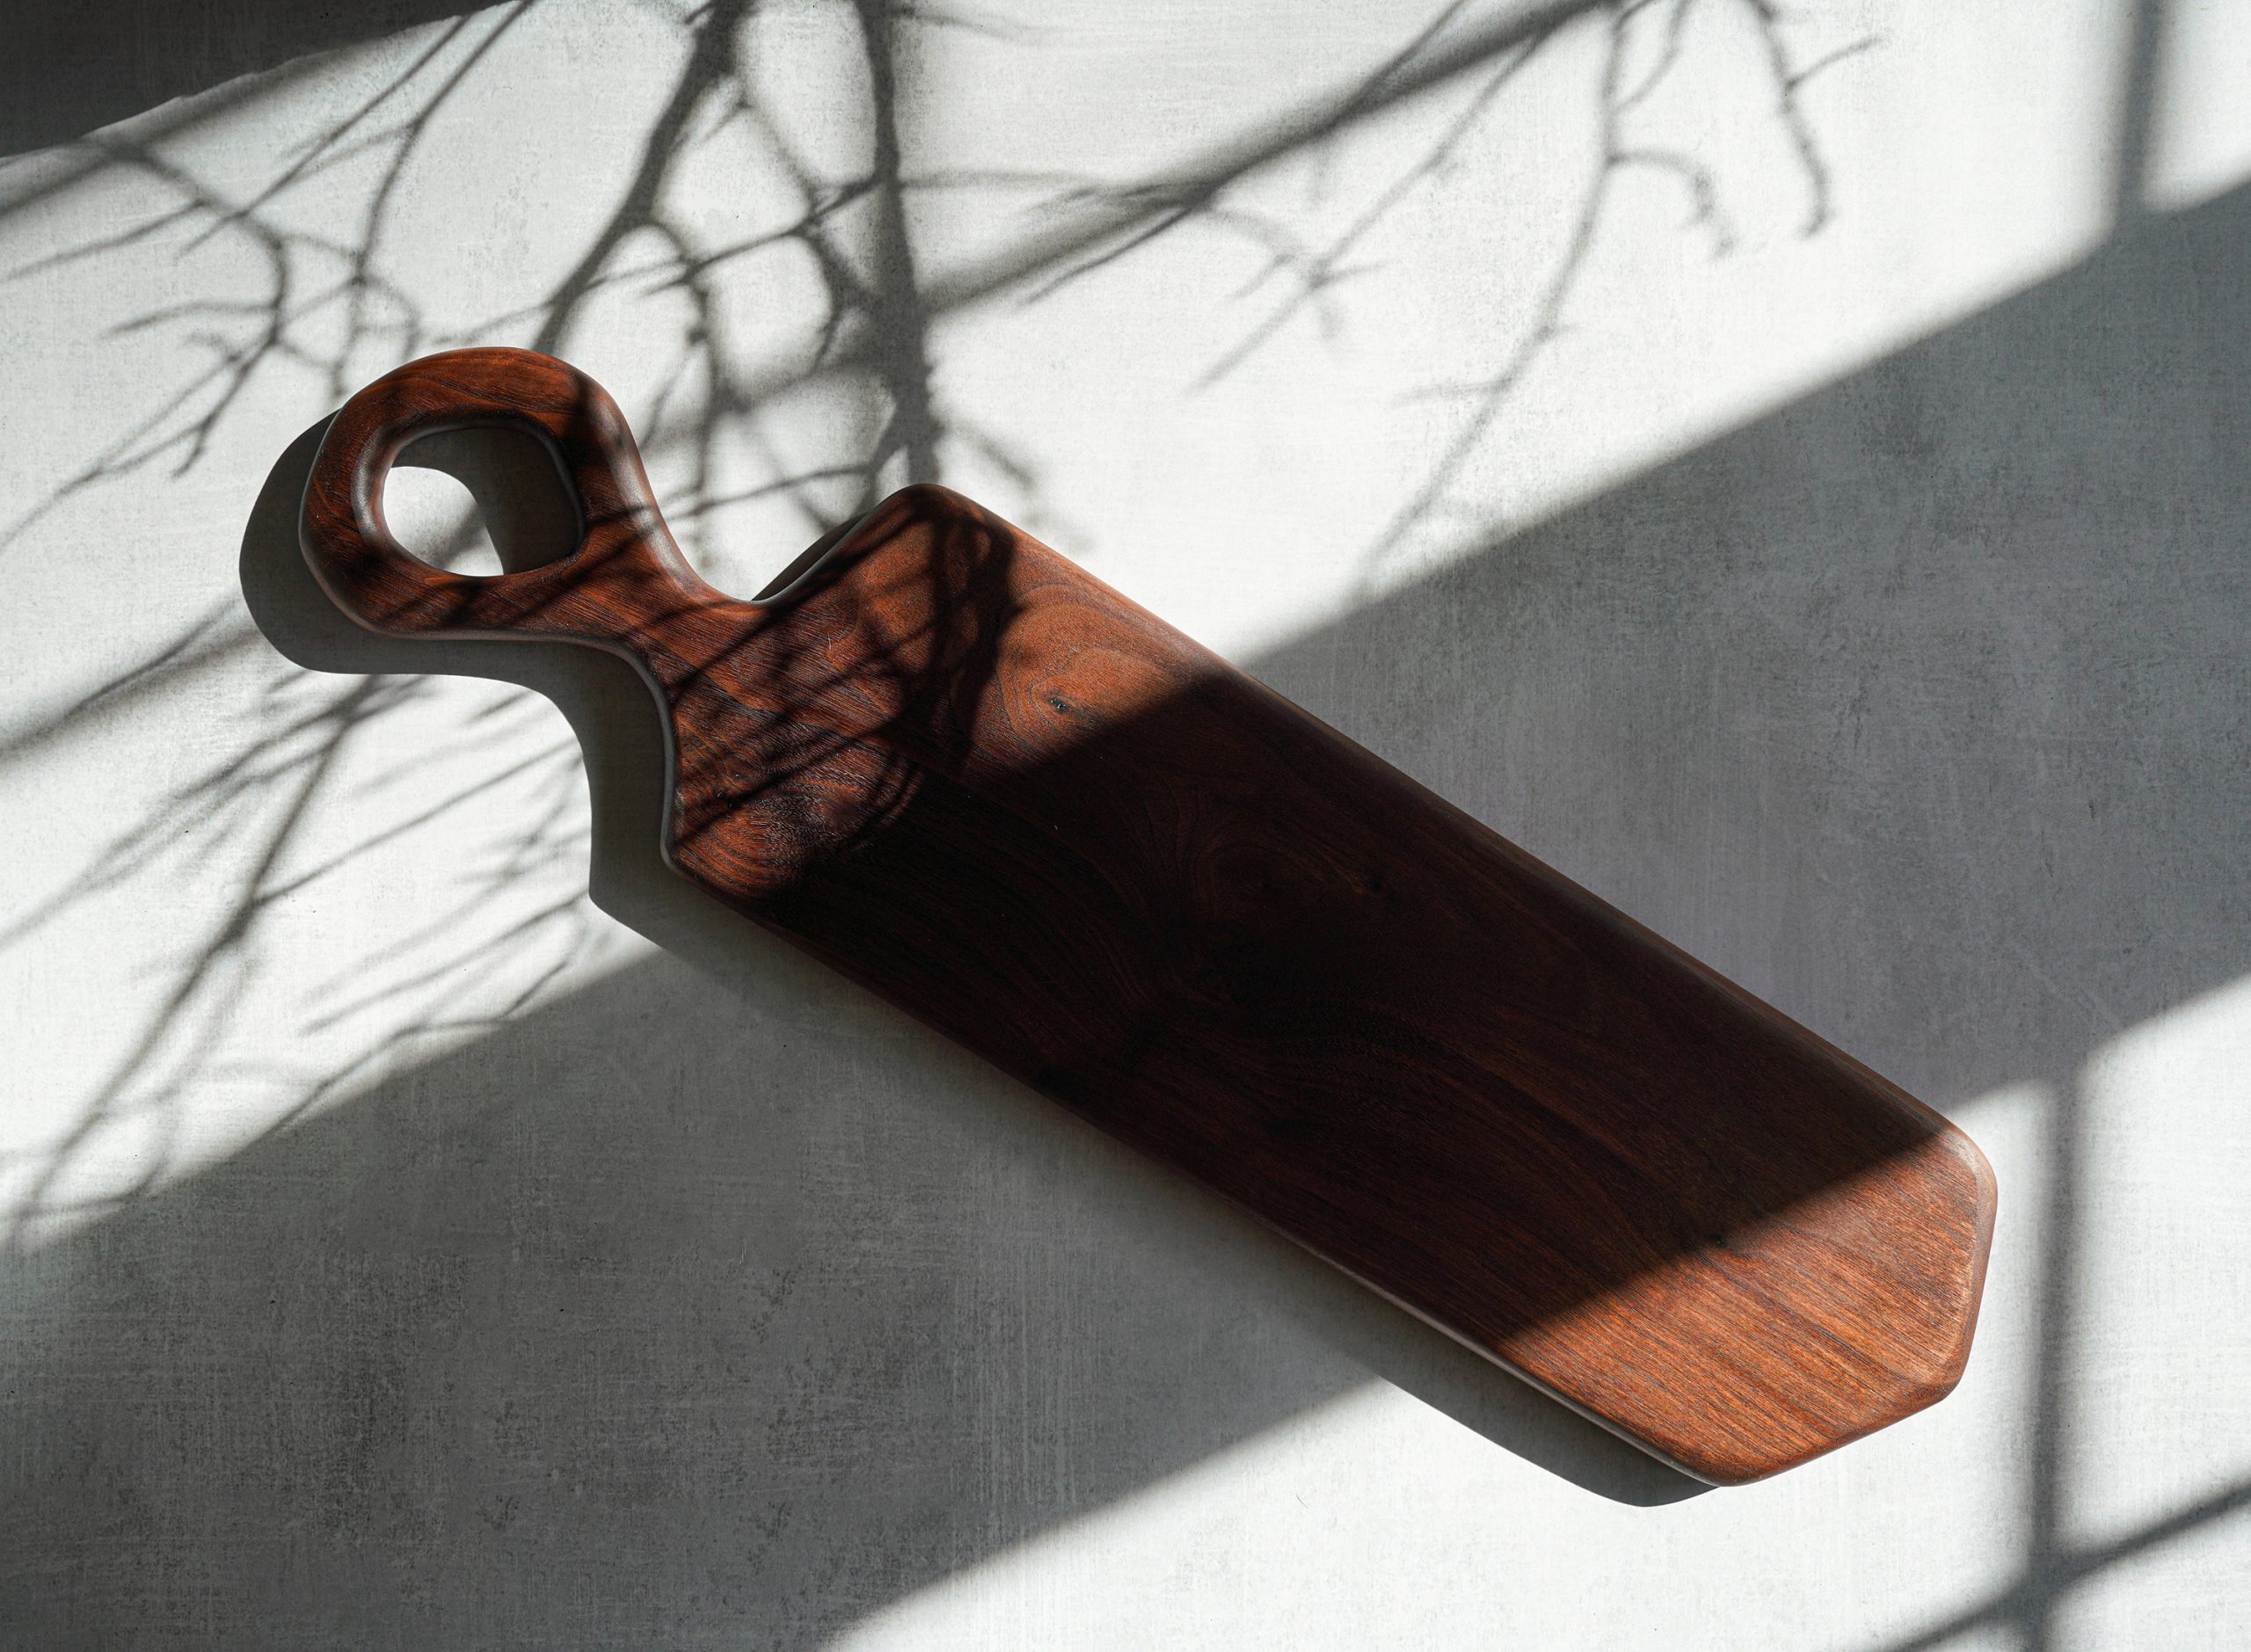 Organic Shaped Wood Serving Board With Handle - Carved By Hand Offered in Local Pennsylvania Walnut, Sycamore, Maple Long